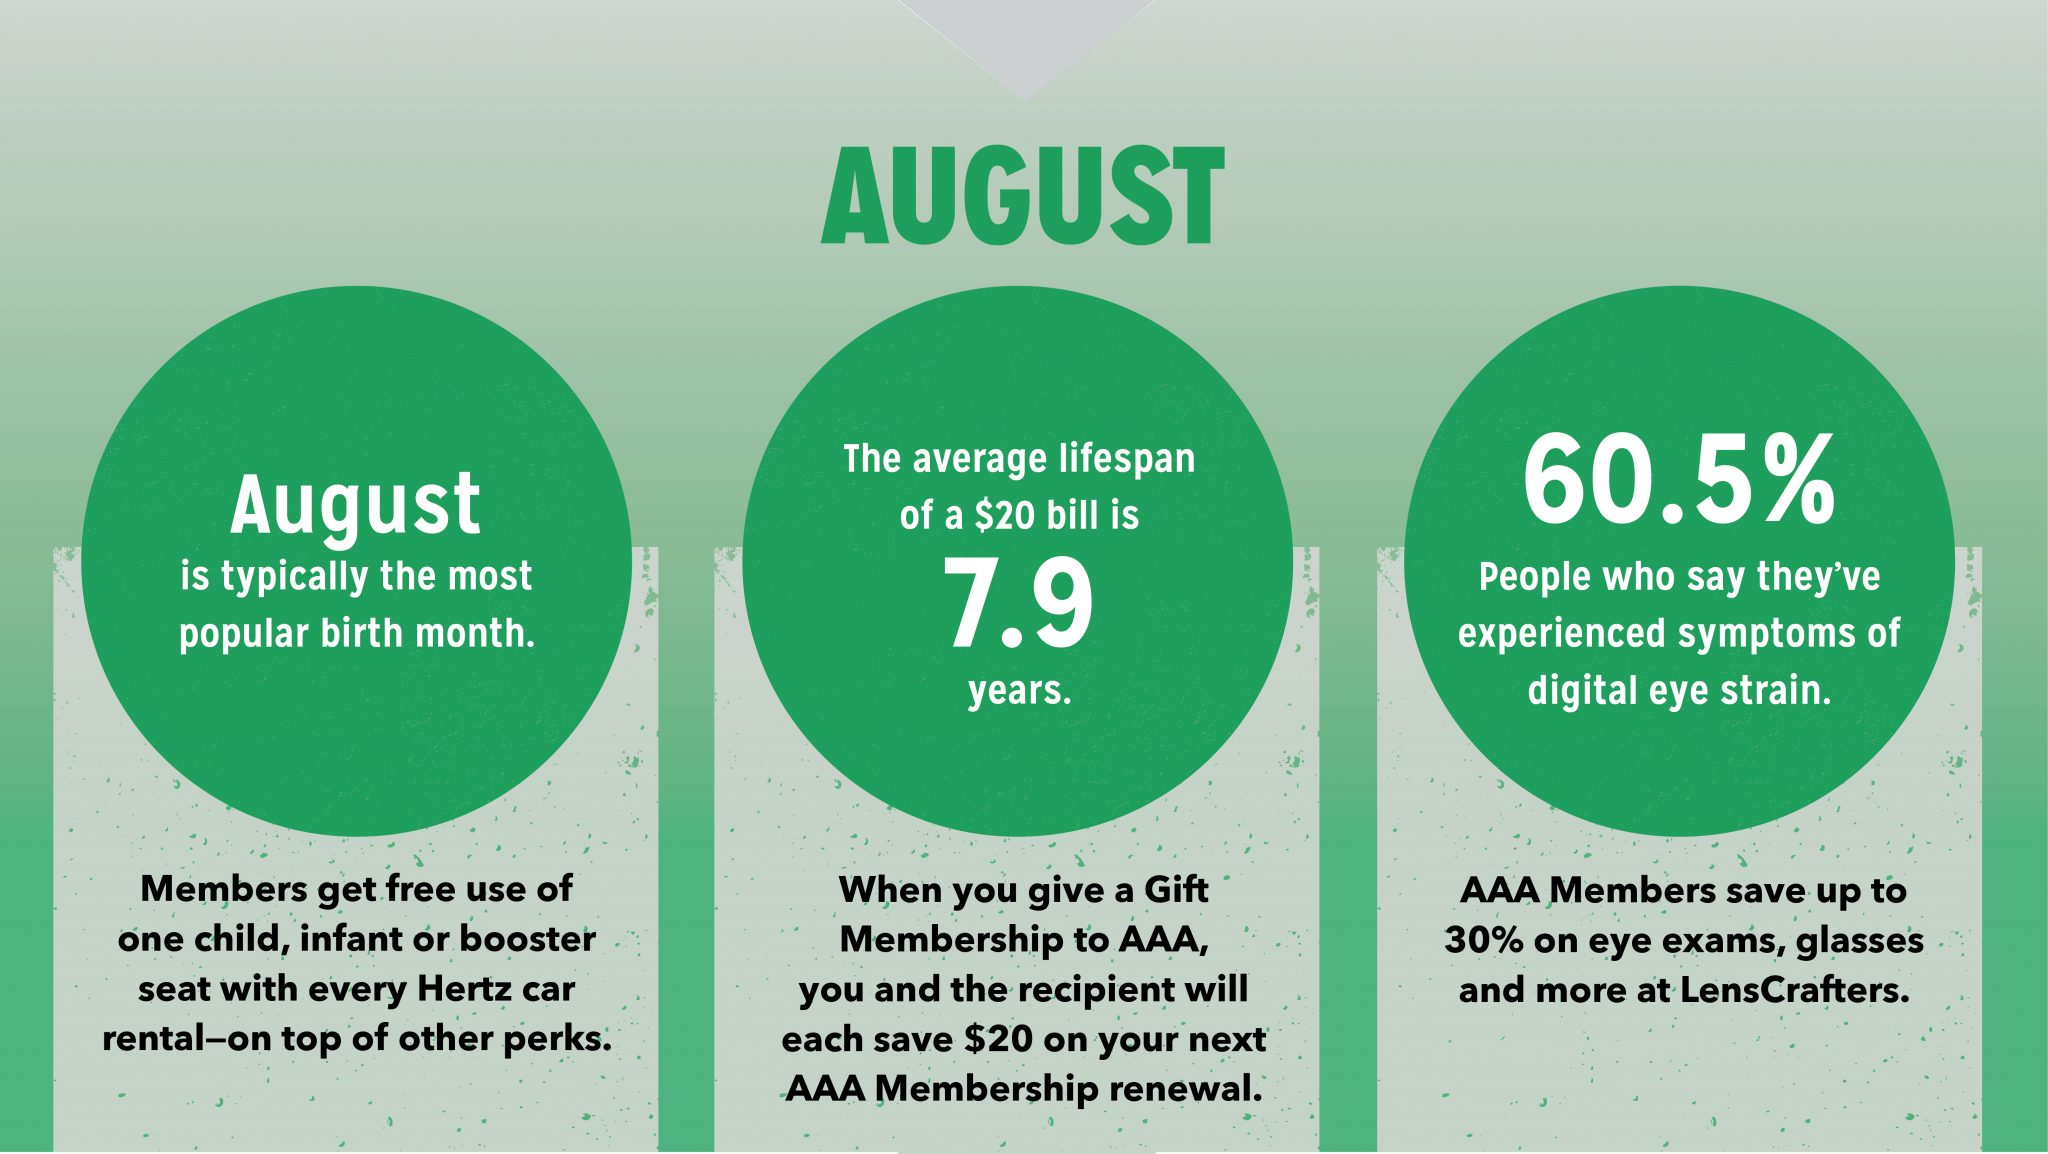 aaa-membership-benefits-august